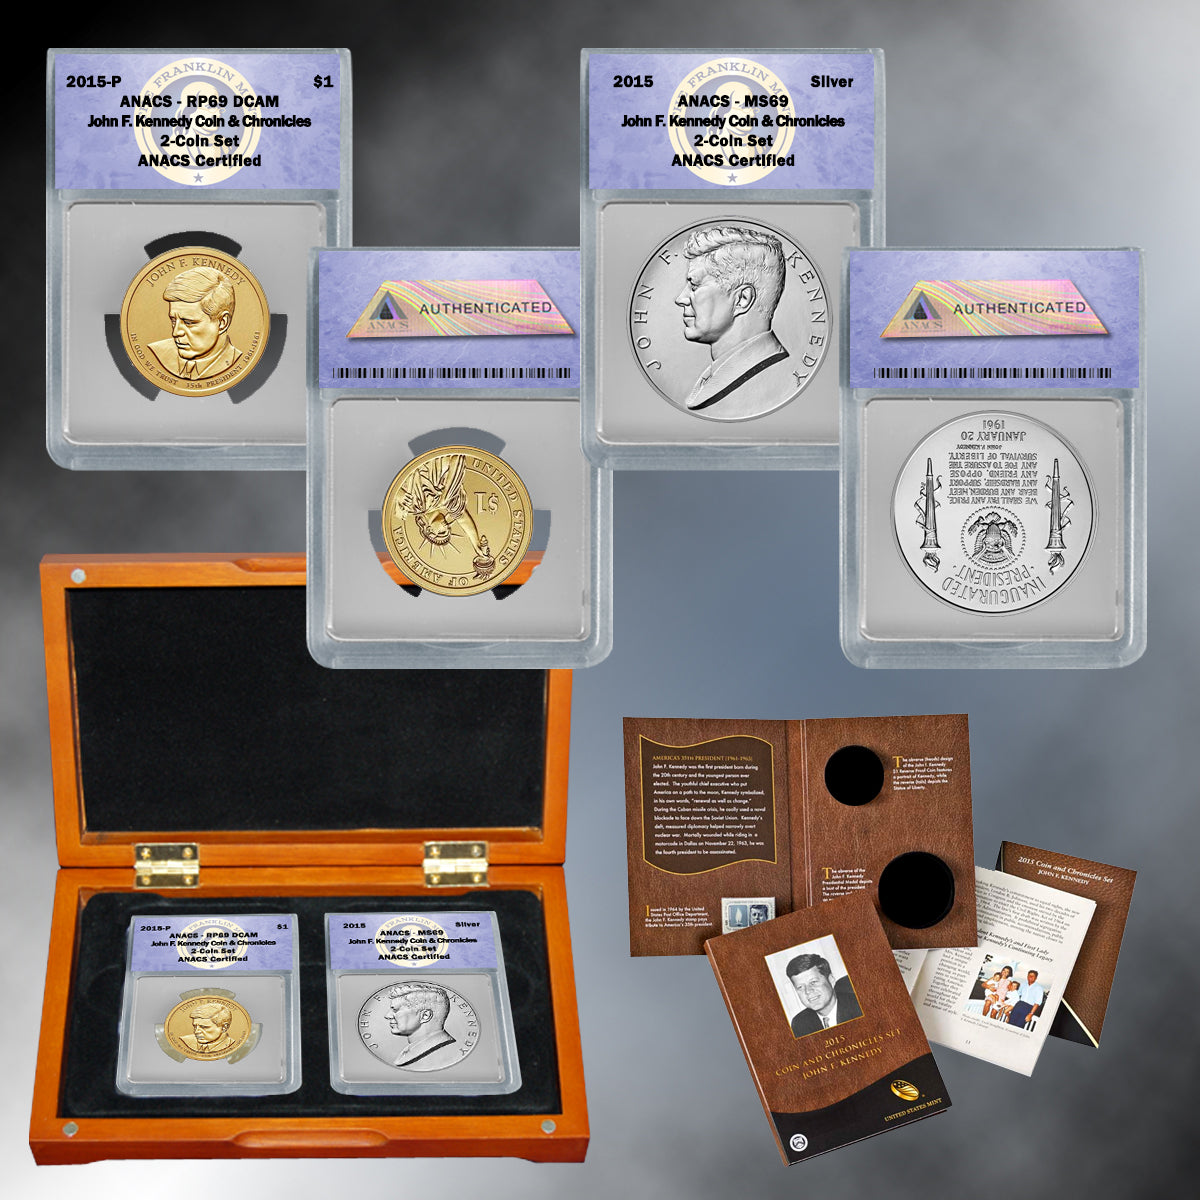 2015 Coin & Chronicles Set - John F. Kennedy ANACS 69